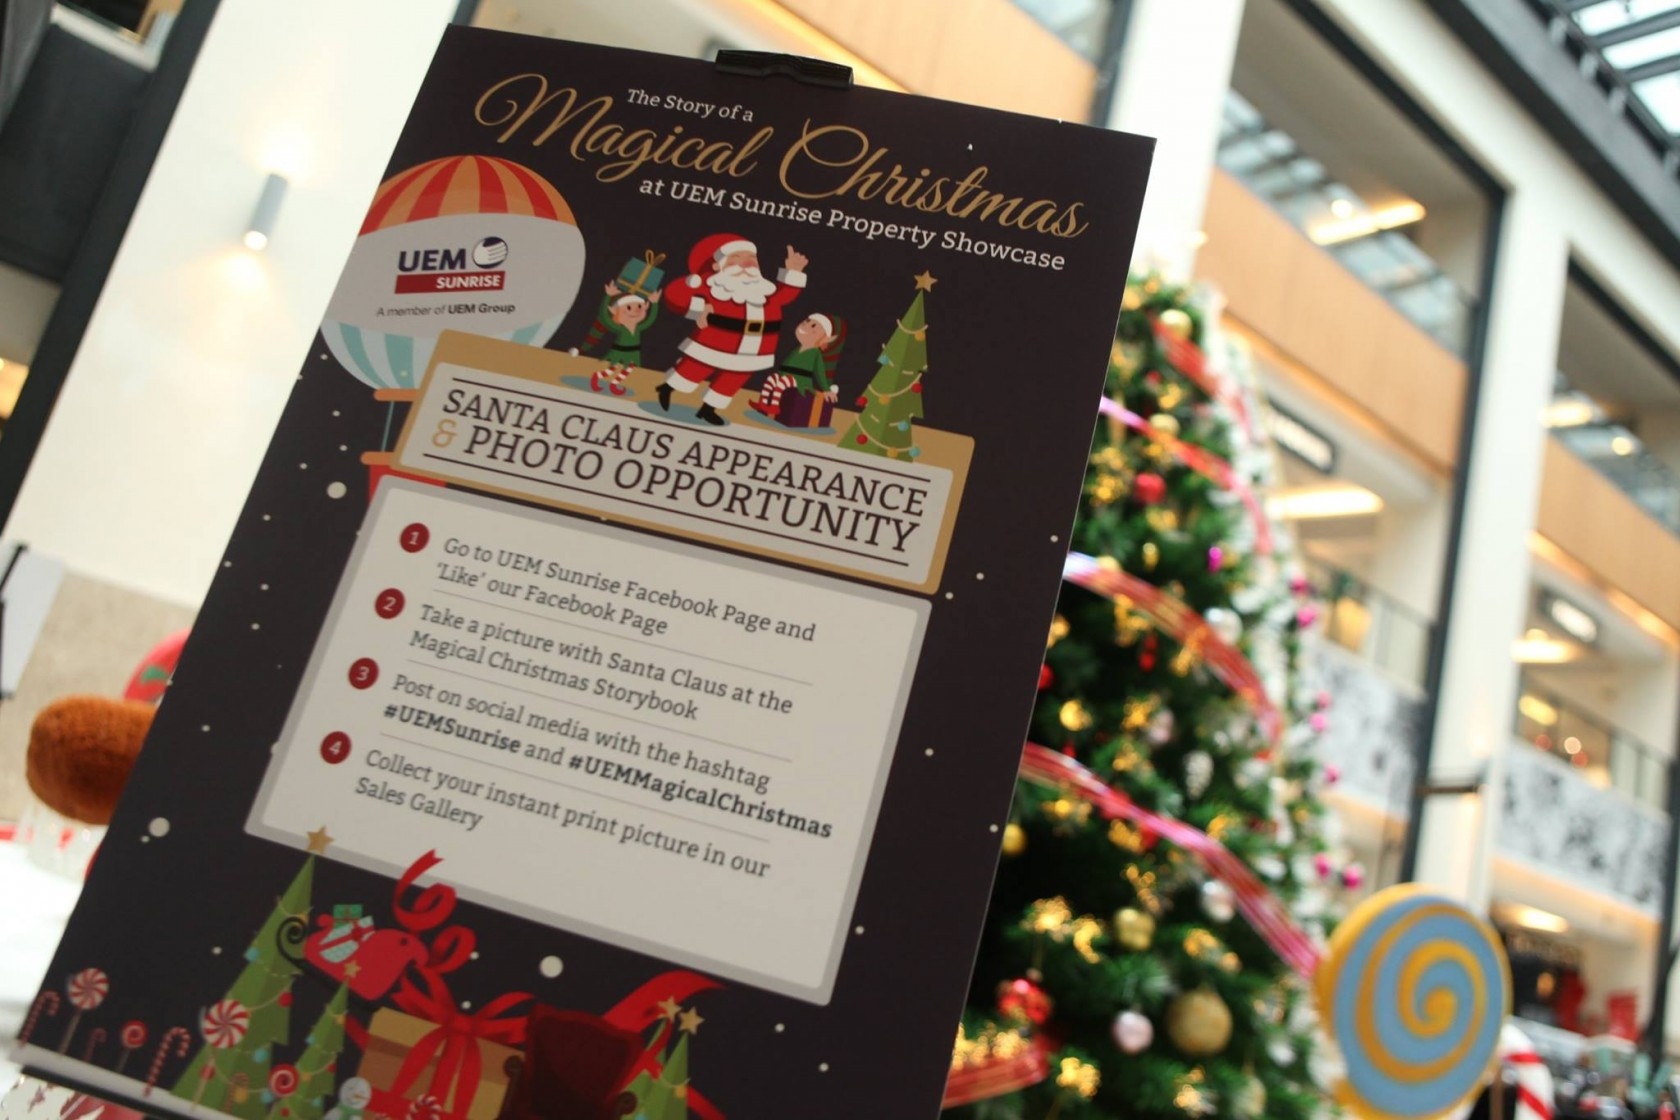 The Story Of A Magical Christmas At Uem Sunrise Property Showcase